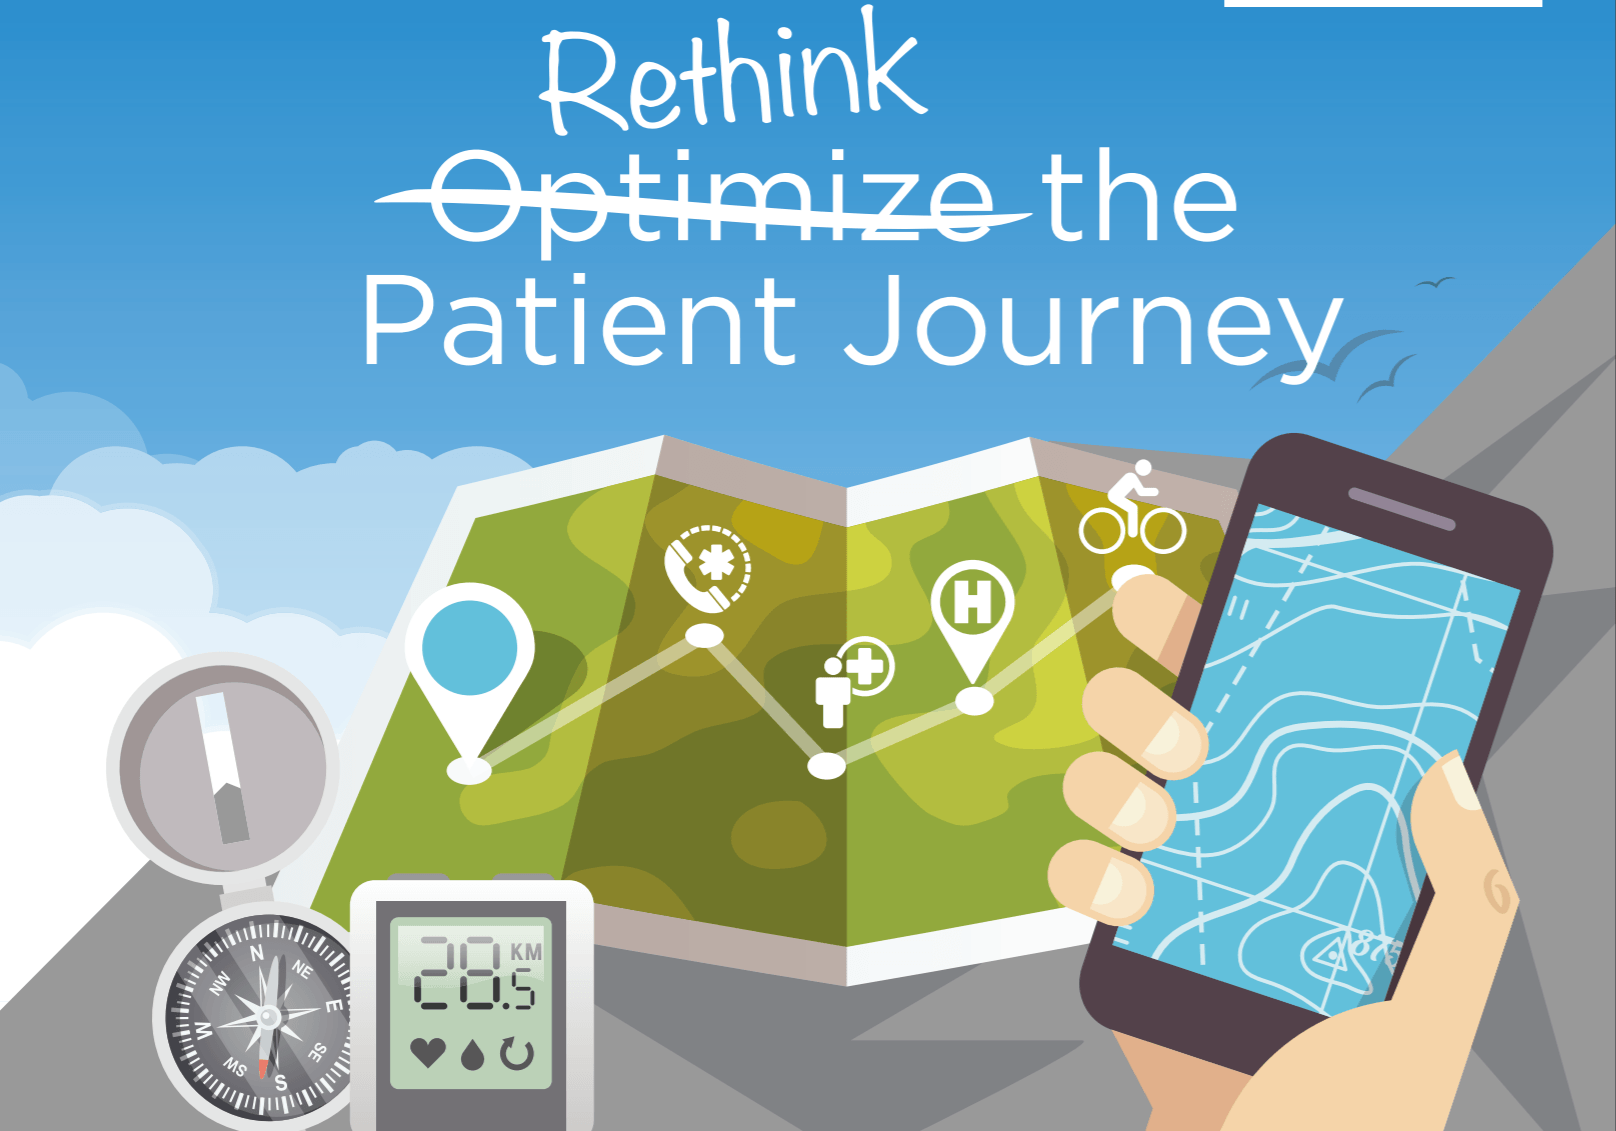 Welltok: Why It Is Time to Rethink The Patient Journey